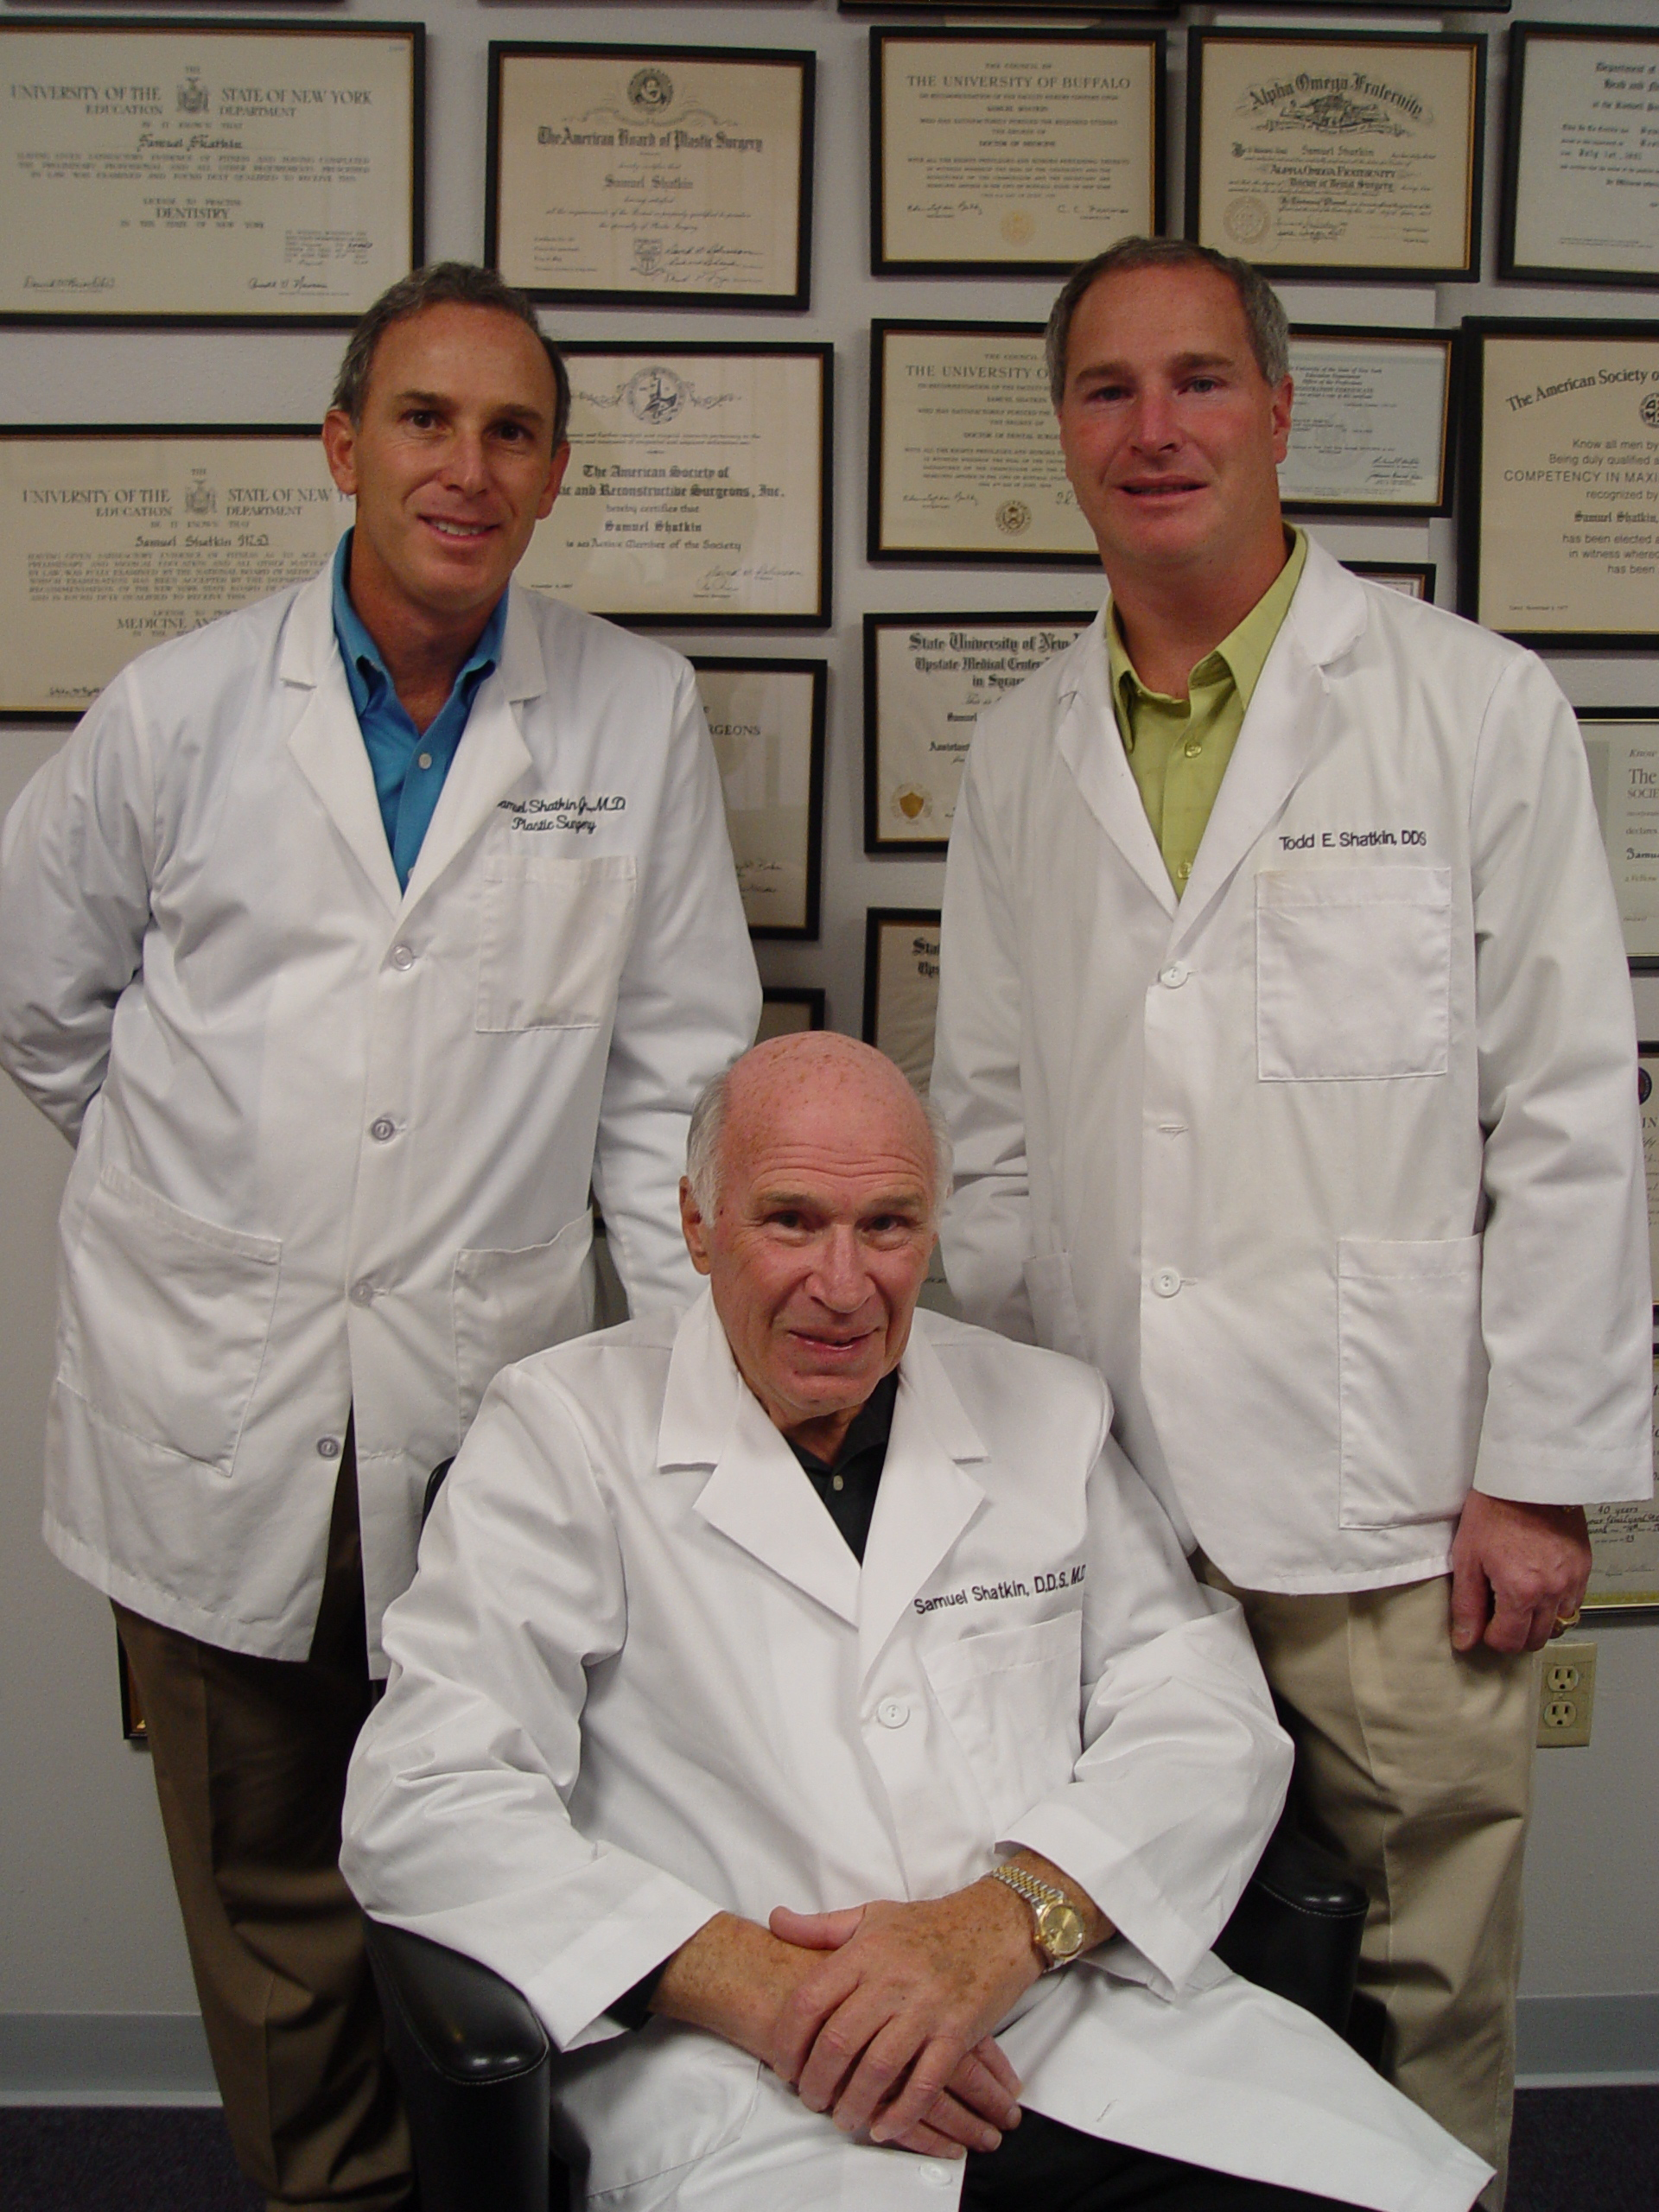 Plastic Surgeon and Cosmetic Dentist - Dr. Sam Shatkin Jr. and Dr. Todd Shatkin